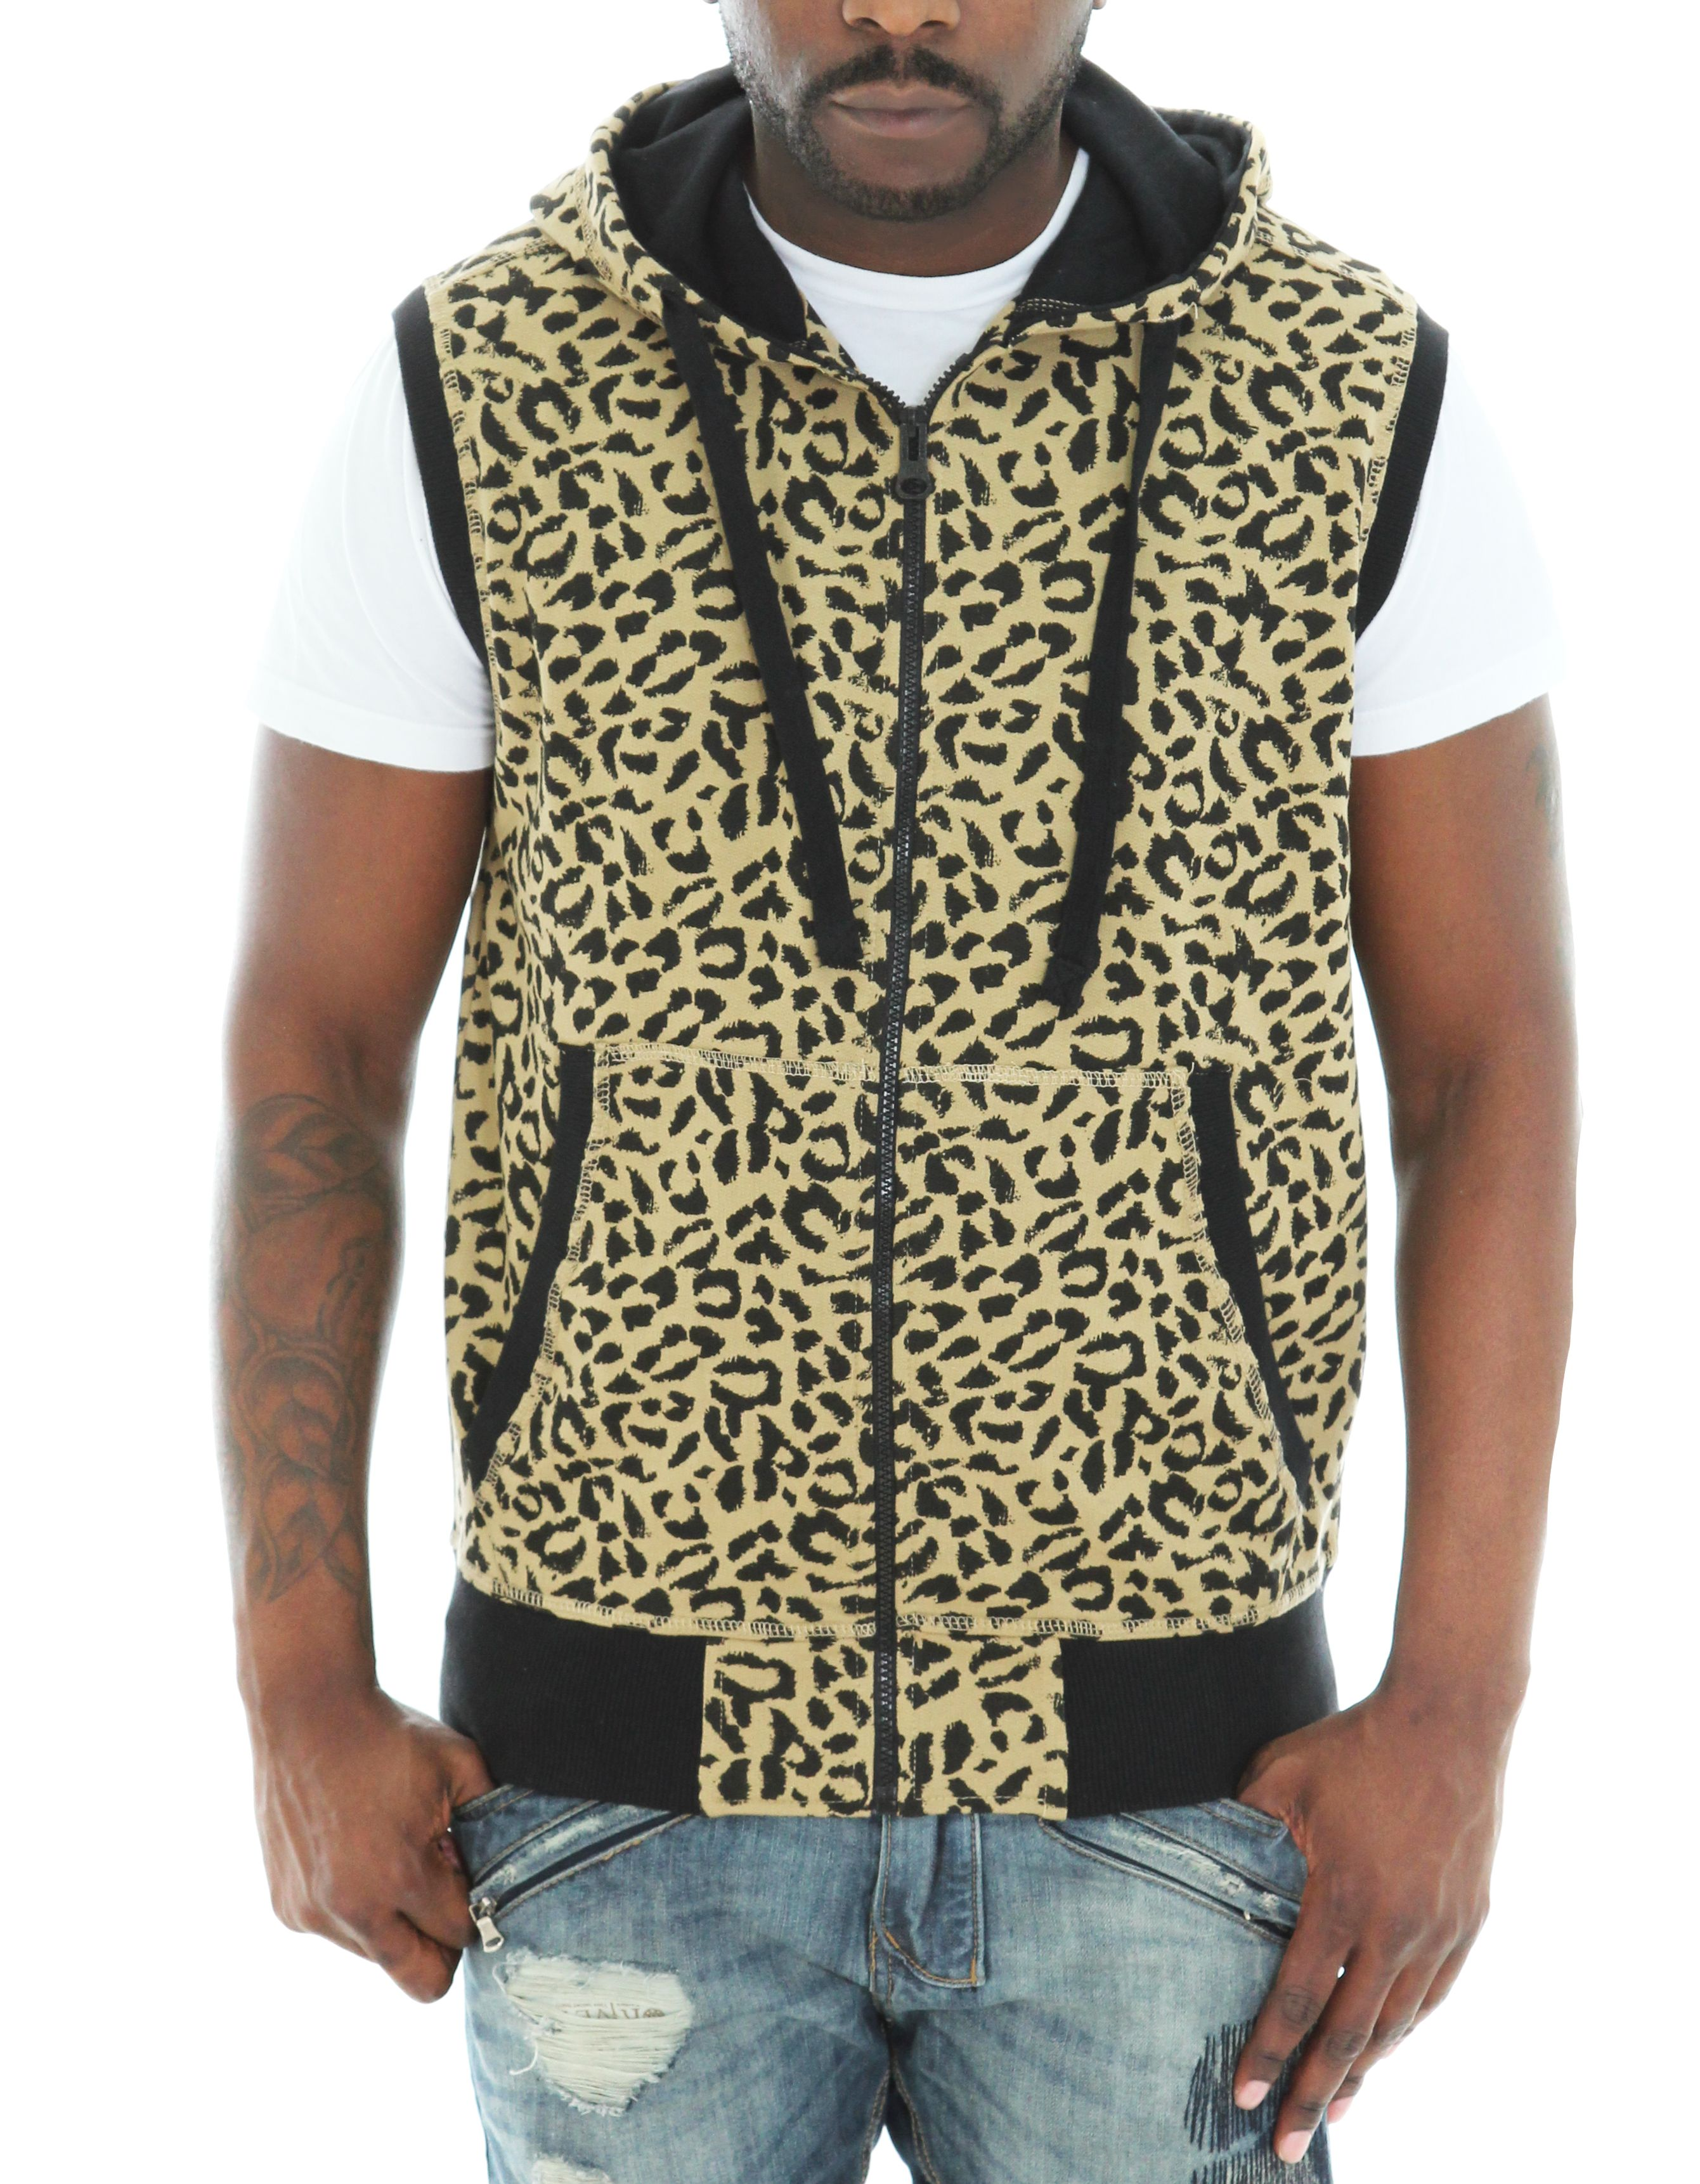 Imperious Men's Leopard Print French Terry Zip Up Sleeveless ...